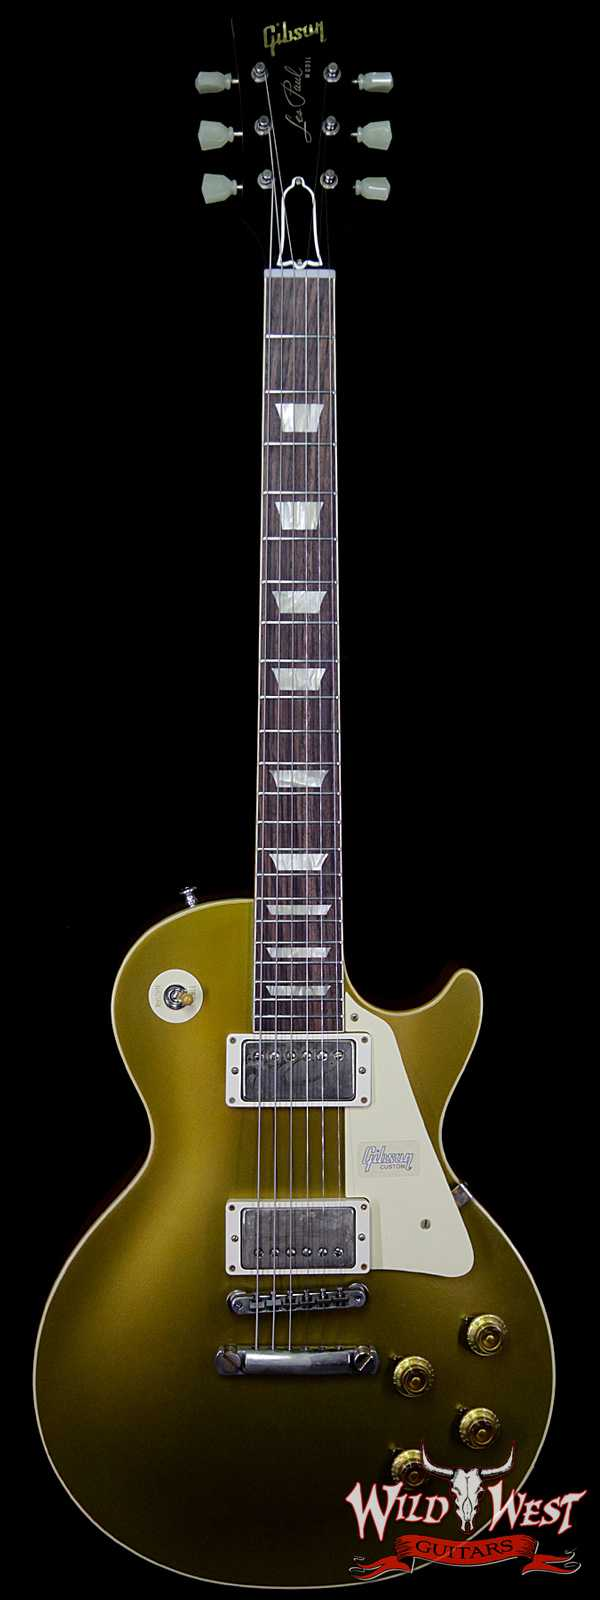 Gibson Custom Shop Historic 1957 Les Paul Goldtop '57 Reissue VOS Natural Back 8.75 LBS